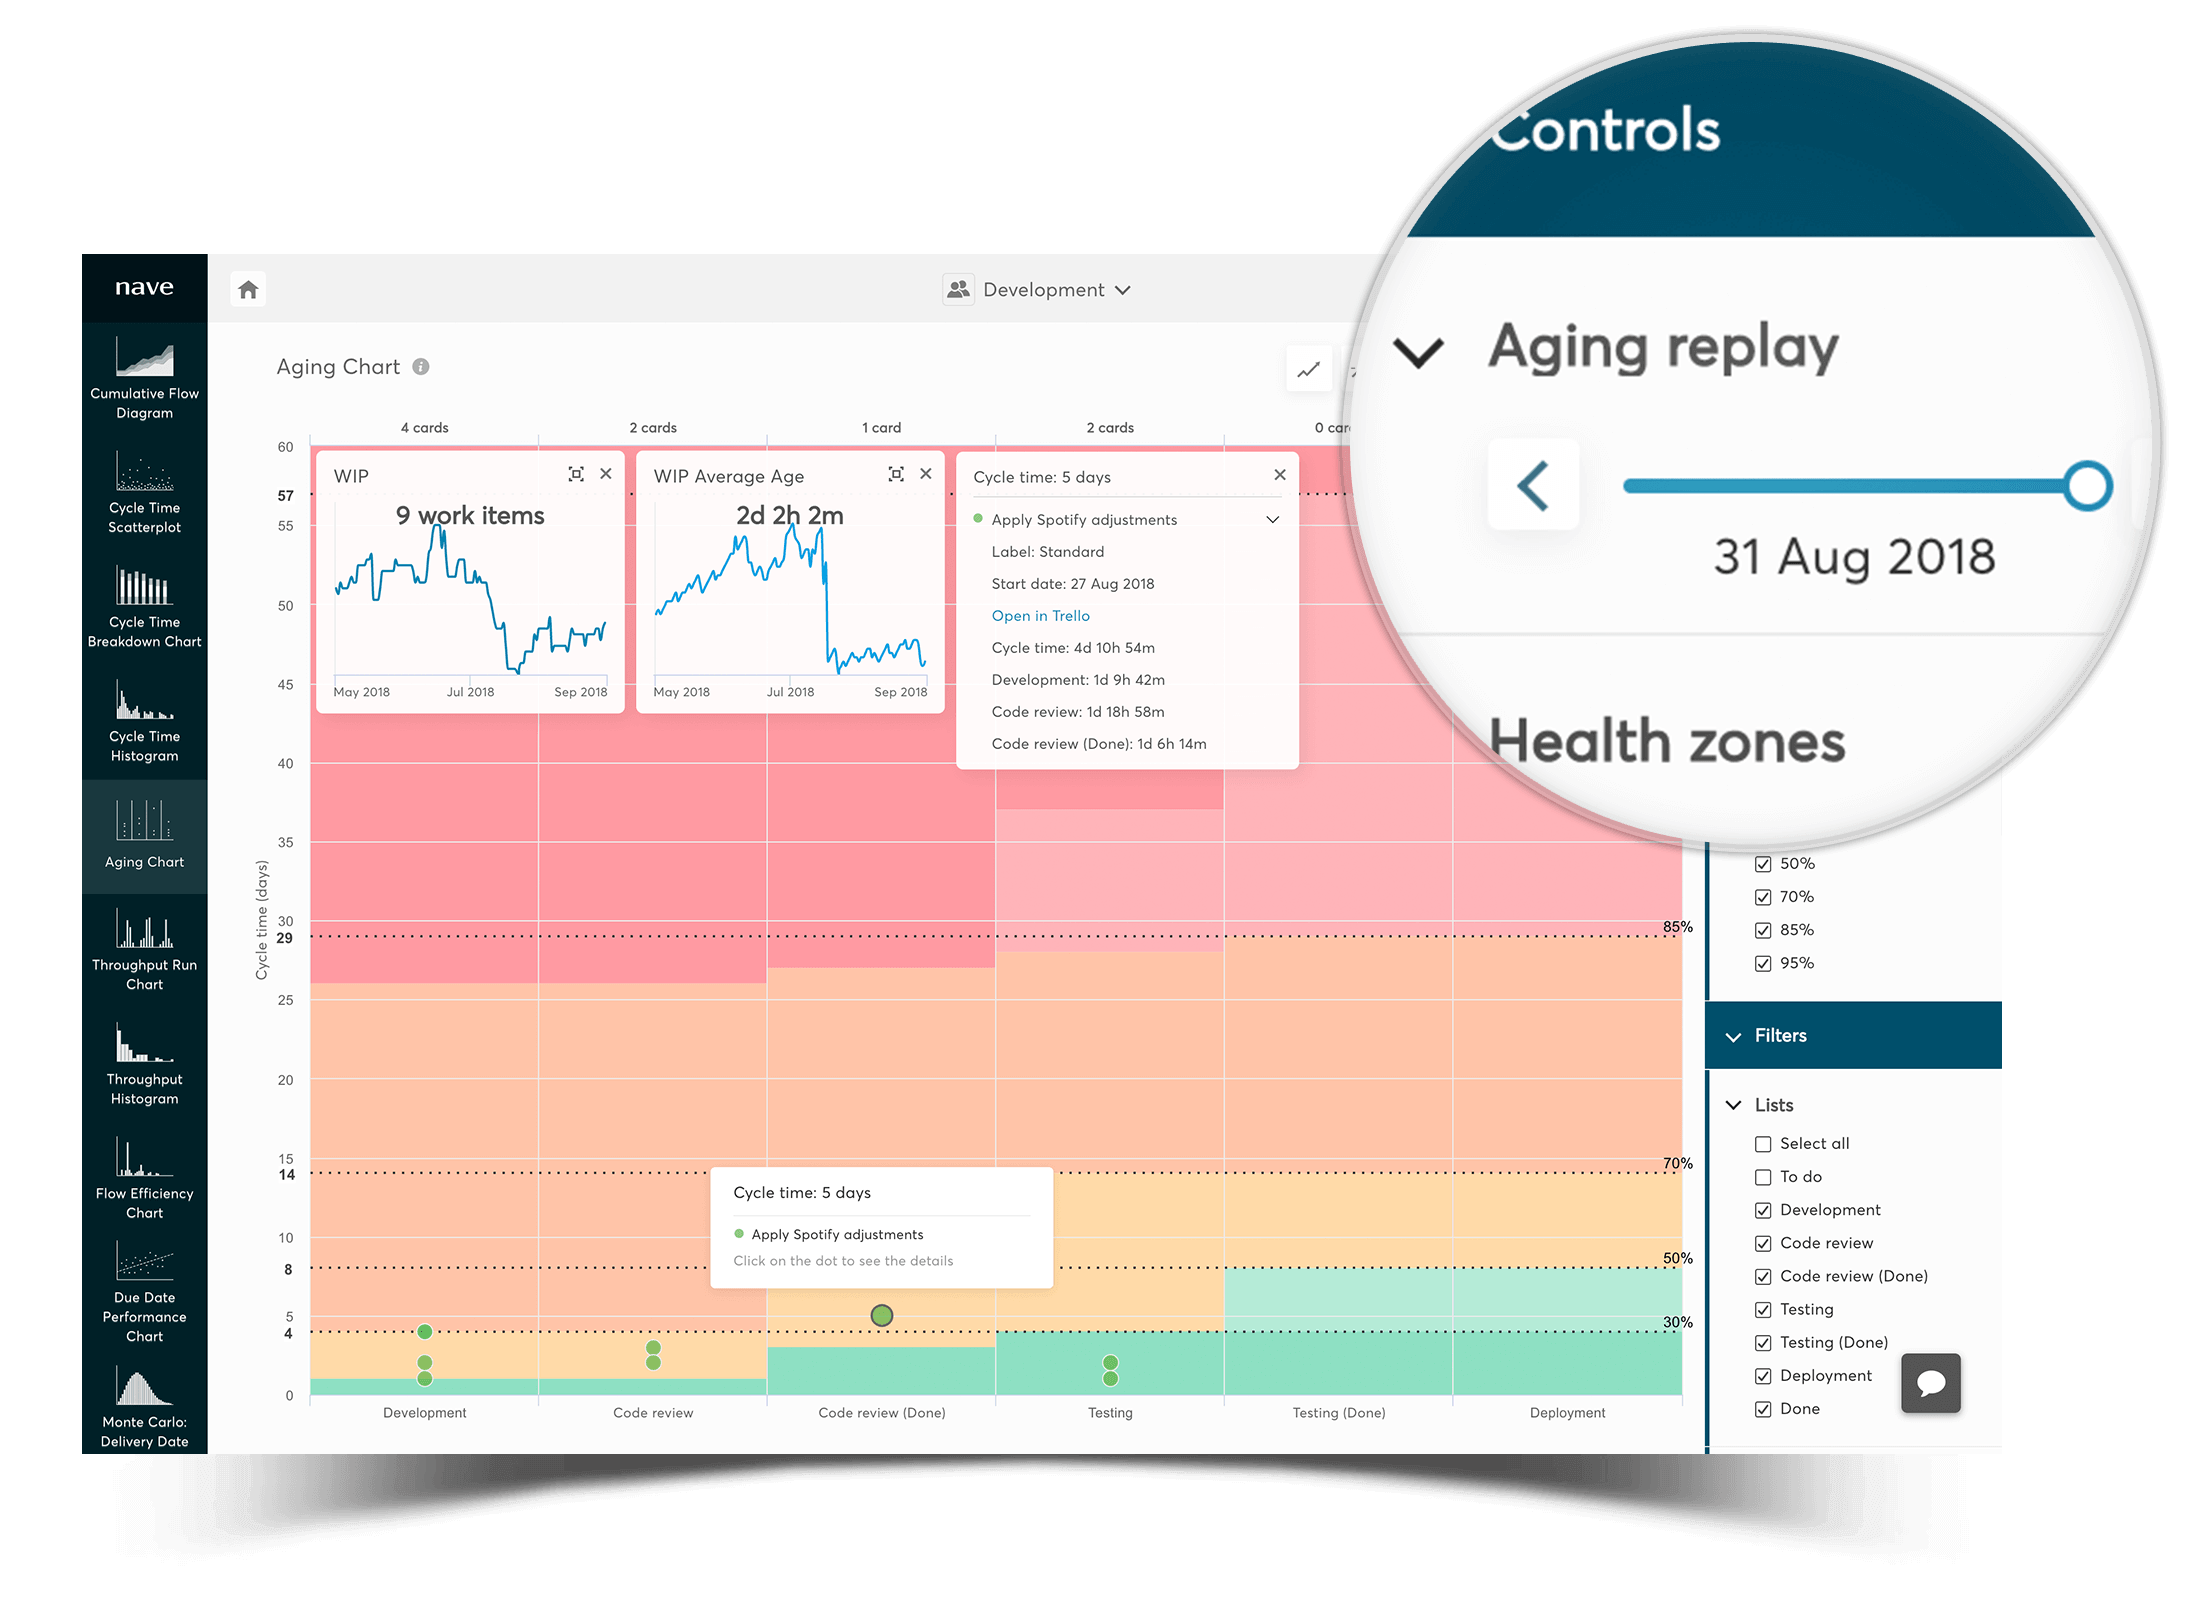 aging chart - review the state of your process in the past